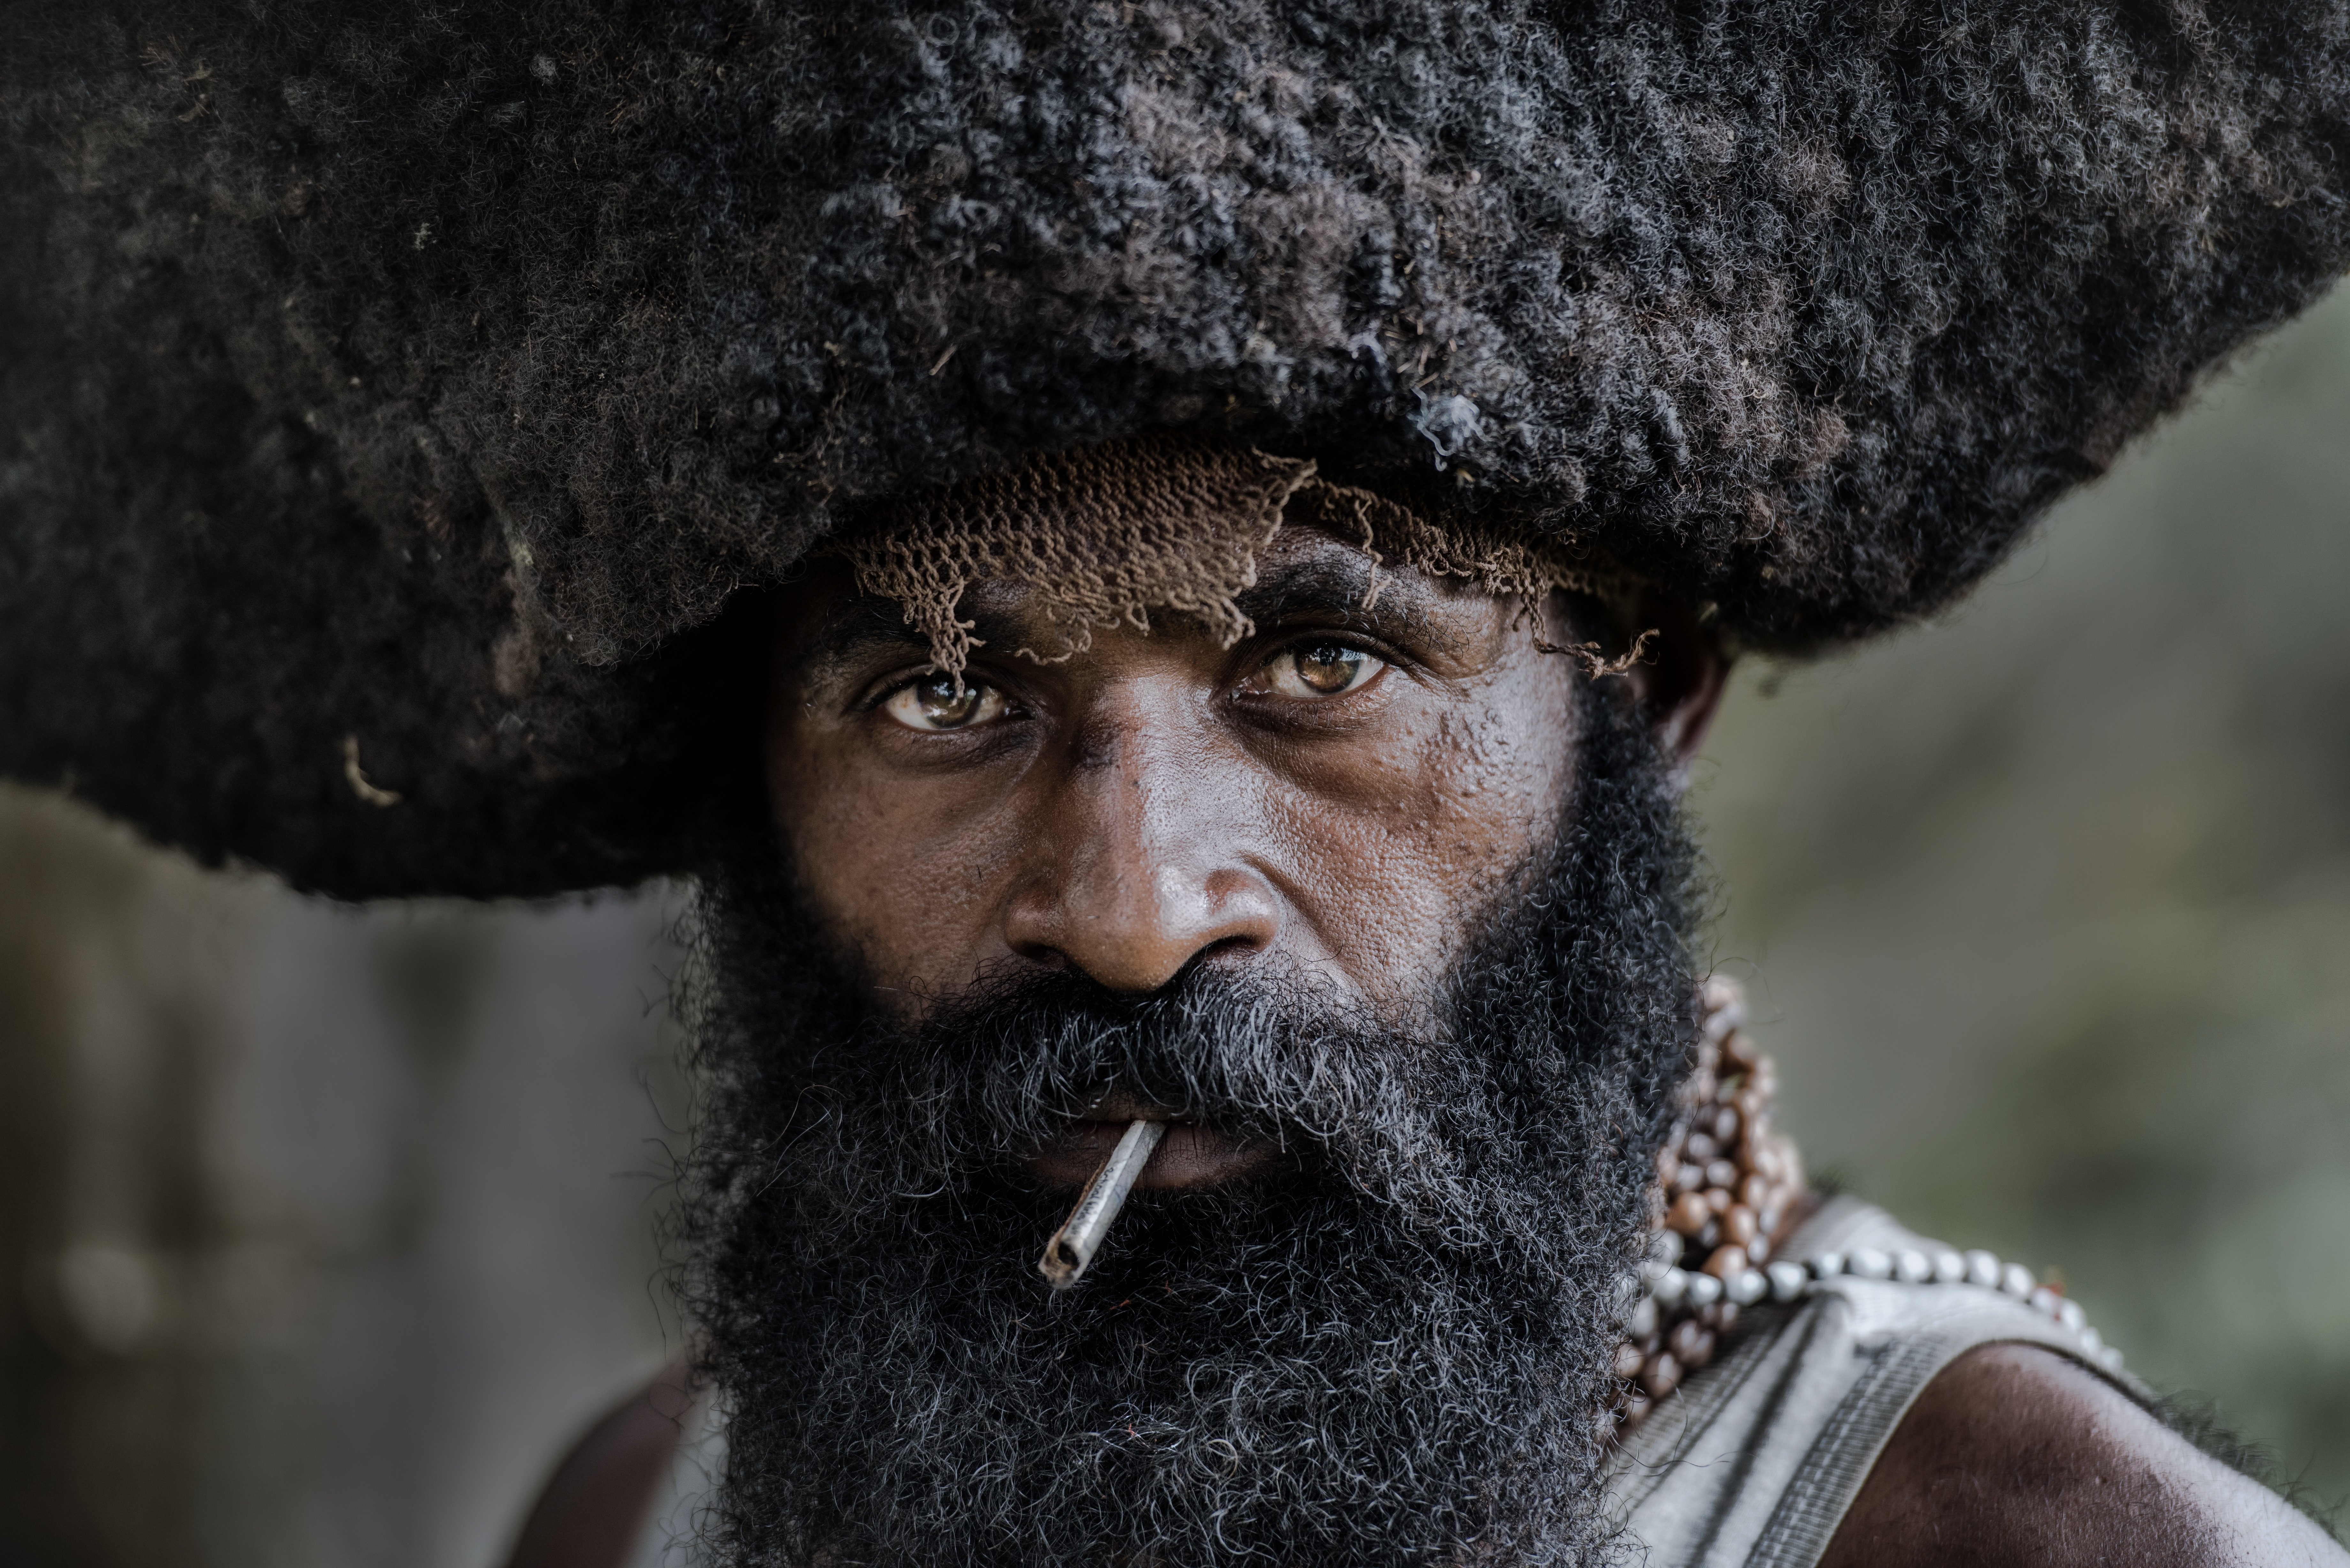 shallow focus photo of man smoking